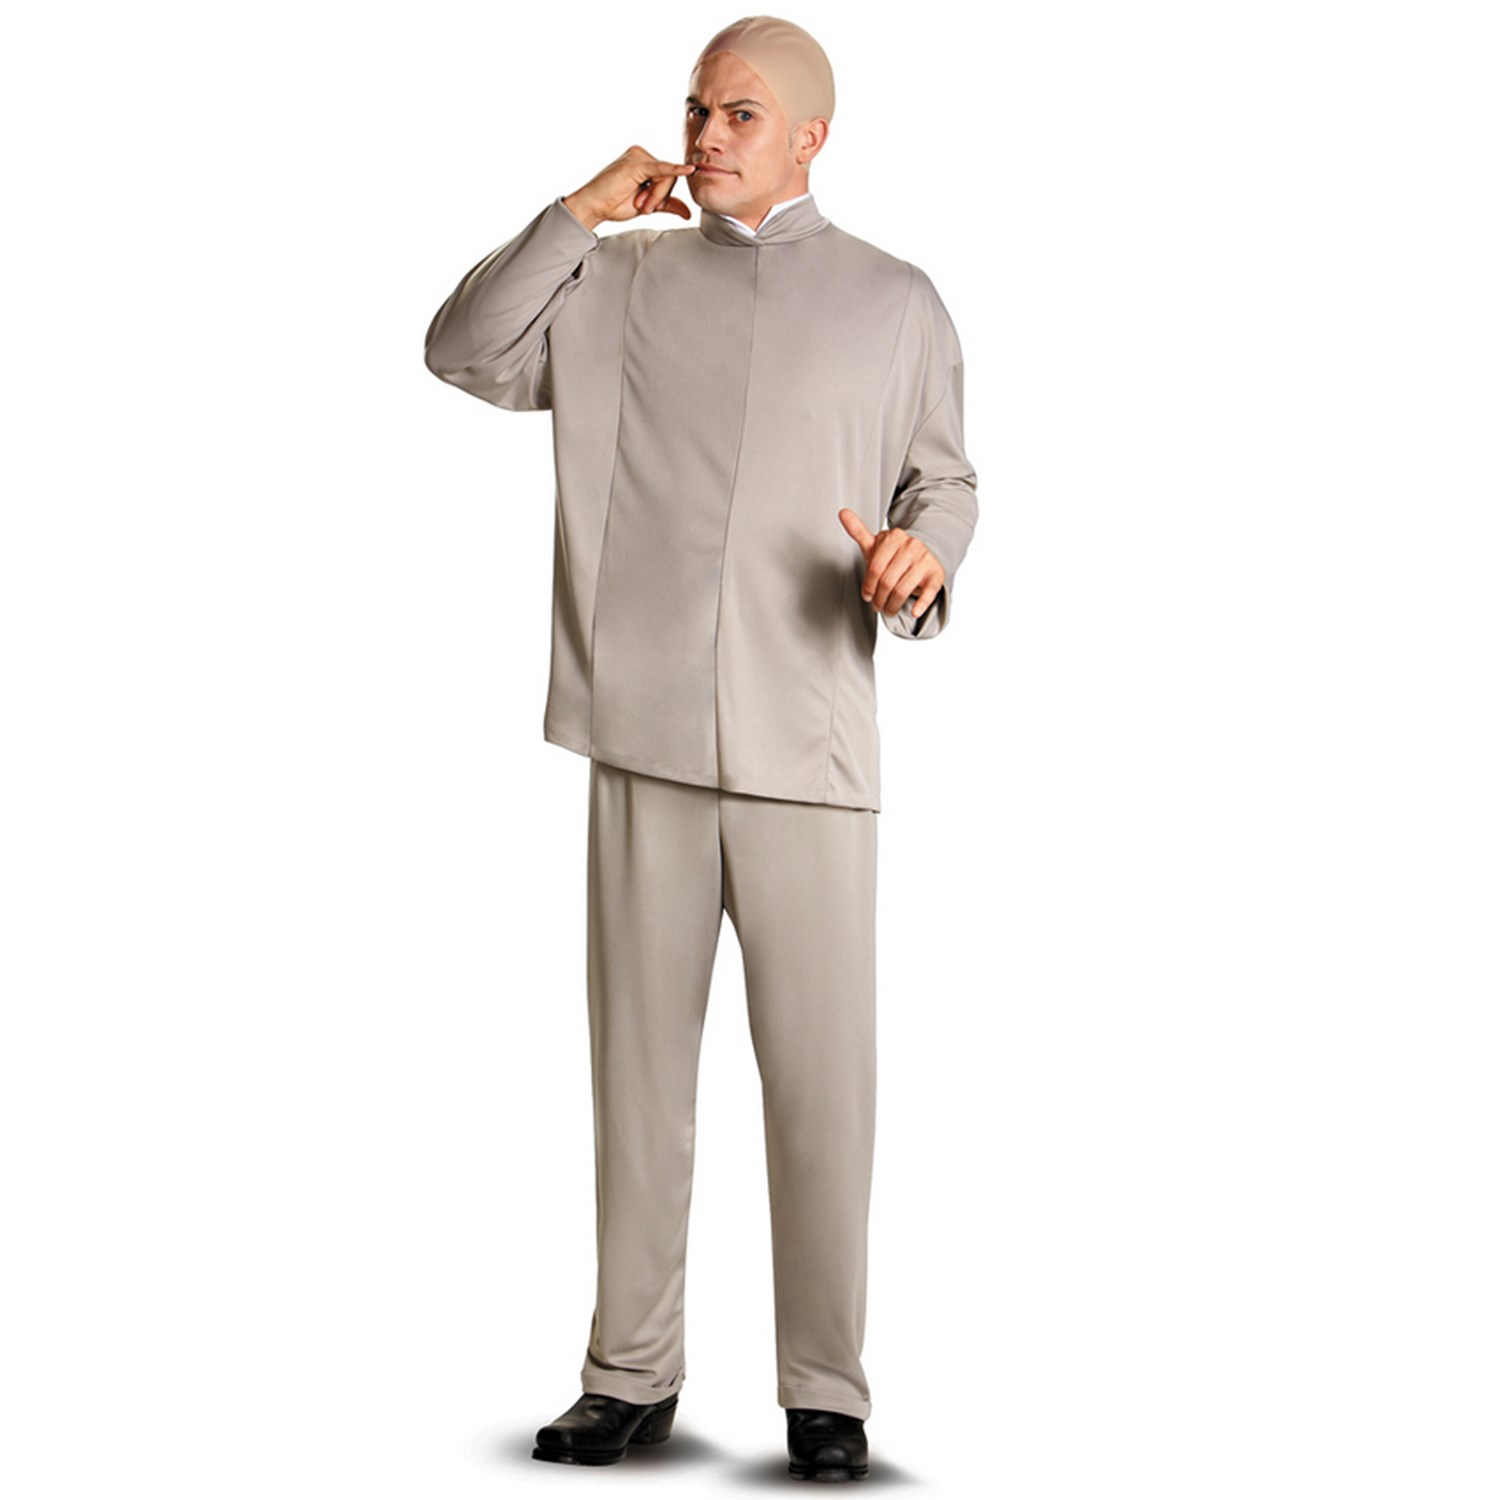 Austin powers dr evil deluxe adult costume buycostumes com